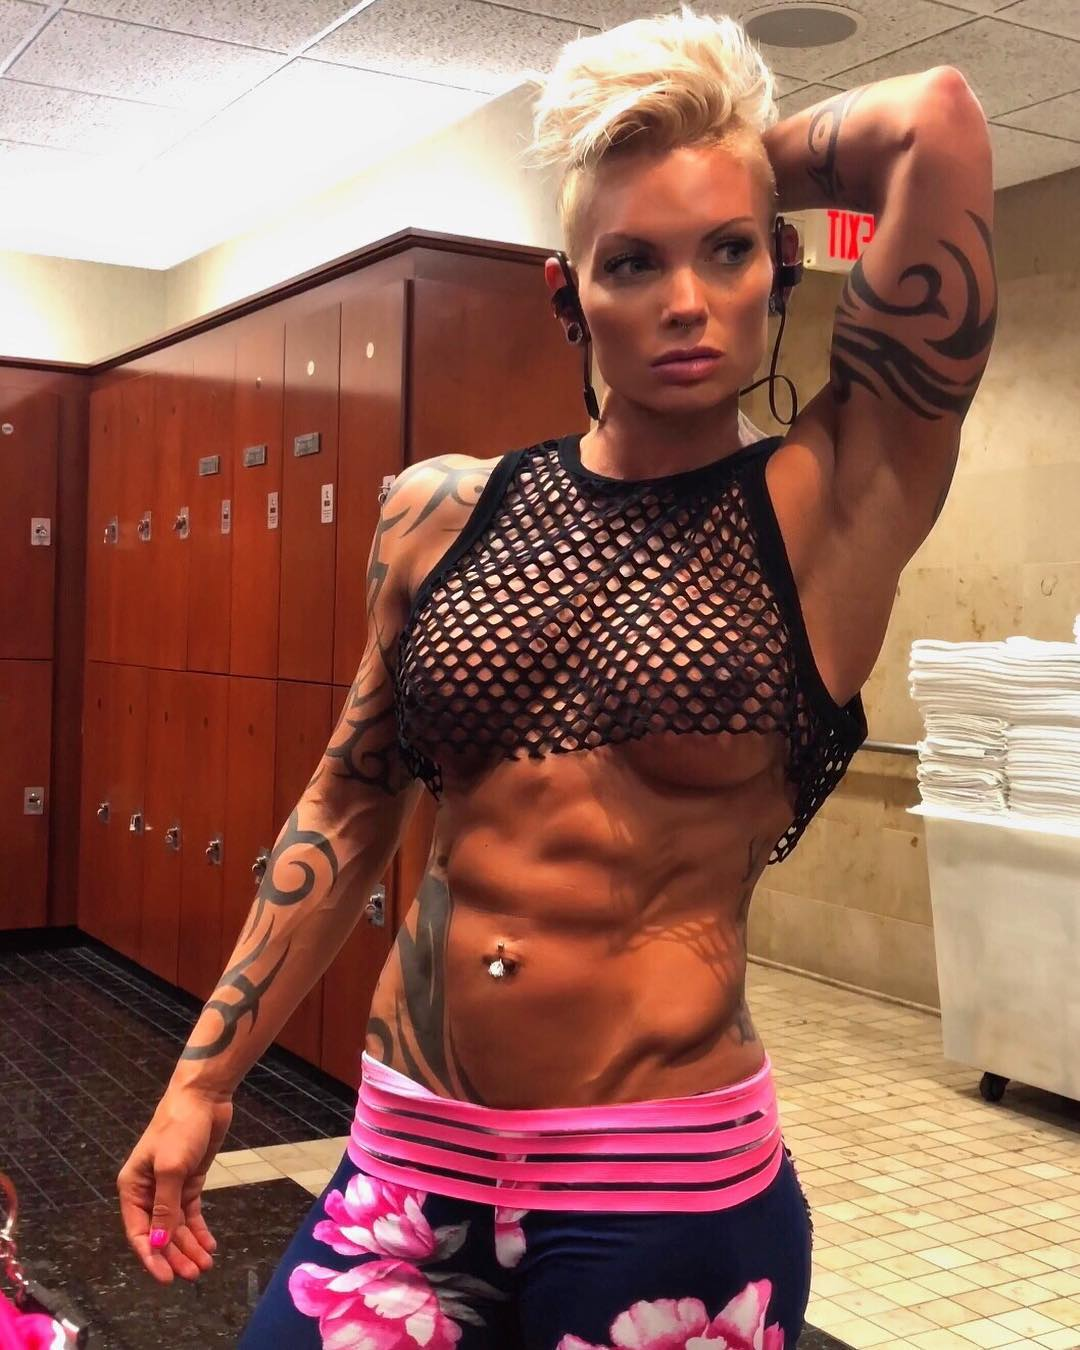 Bodybuilder Nahla Monroe is truly the perfect model for body positivity. Get to know the bodybuilder and her inspiration.